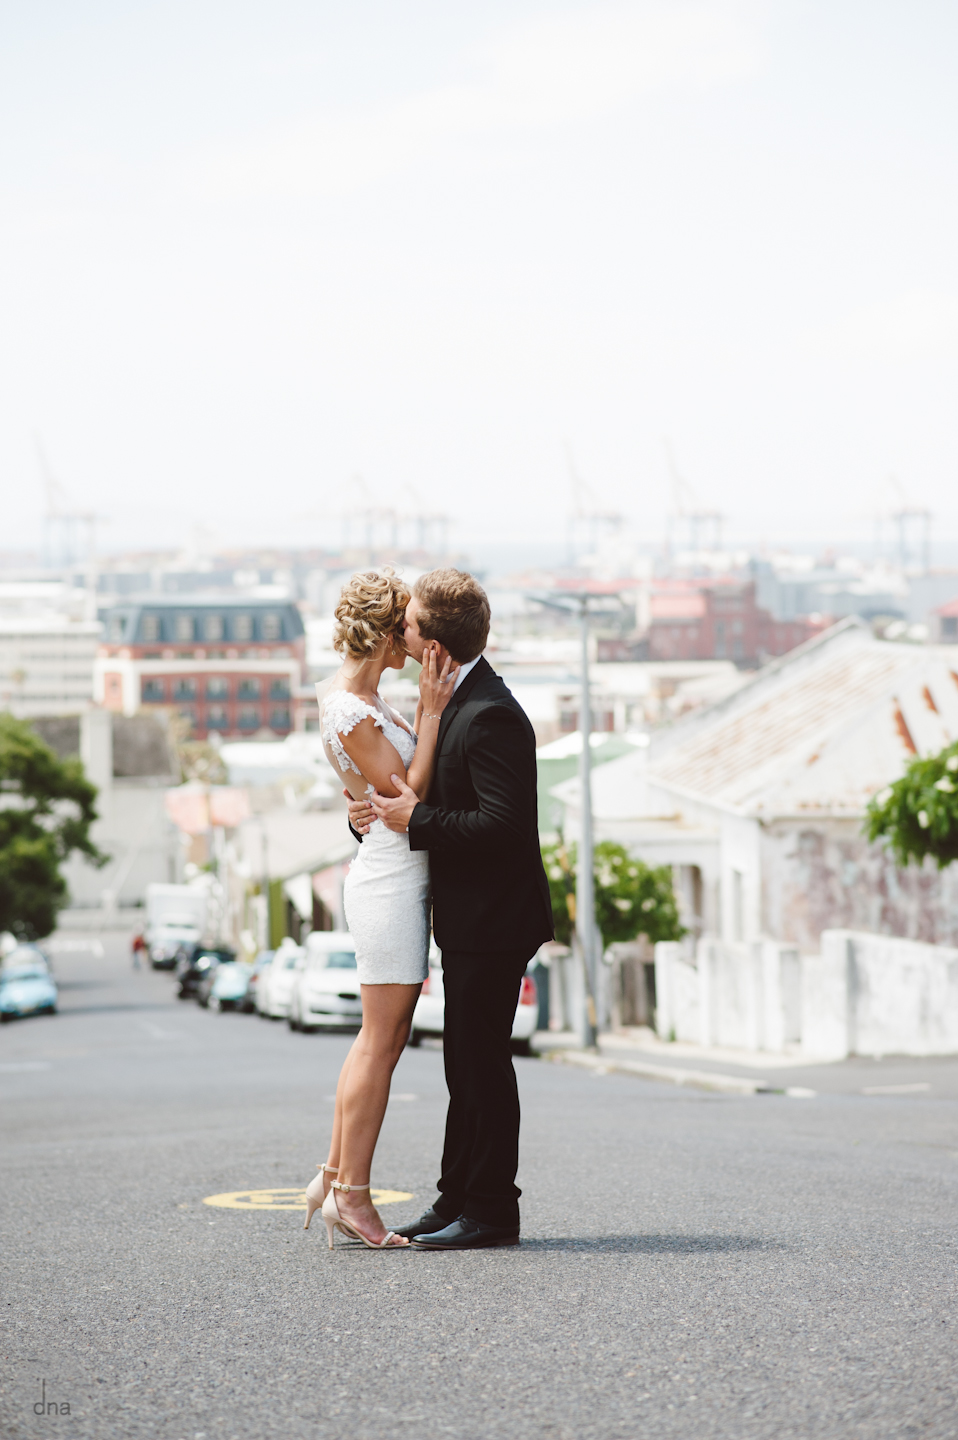 couple shoot Chrisli and Matt wedding Greek Orthodox Church Woodstock Cape Town South Africa shot by dna photographers 99.jpg